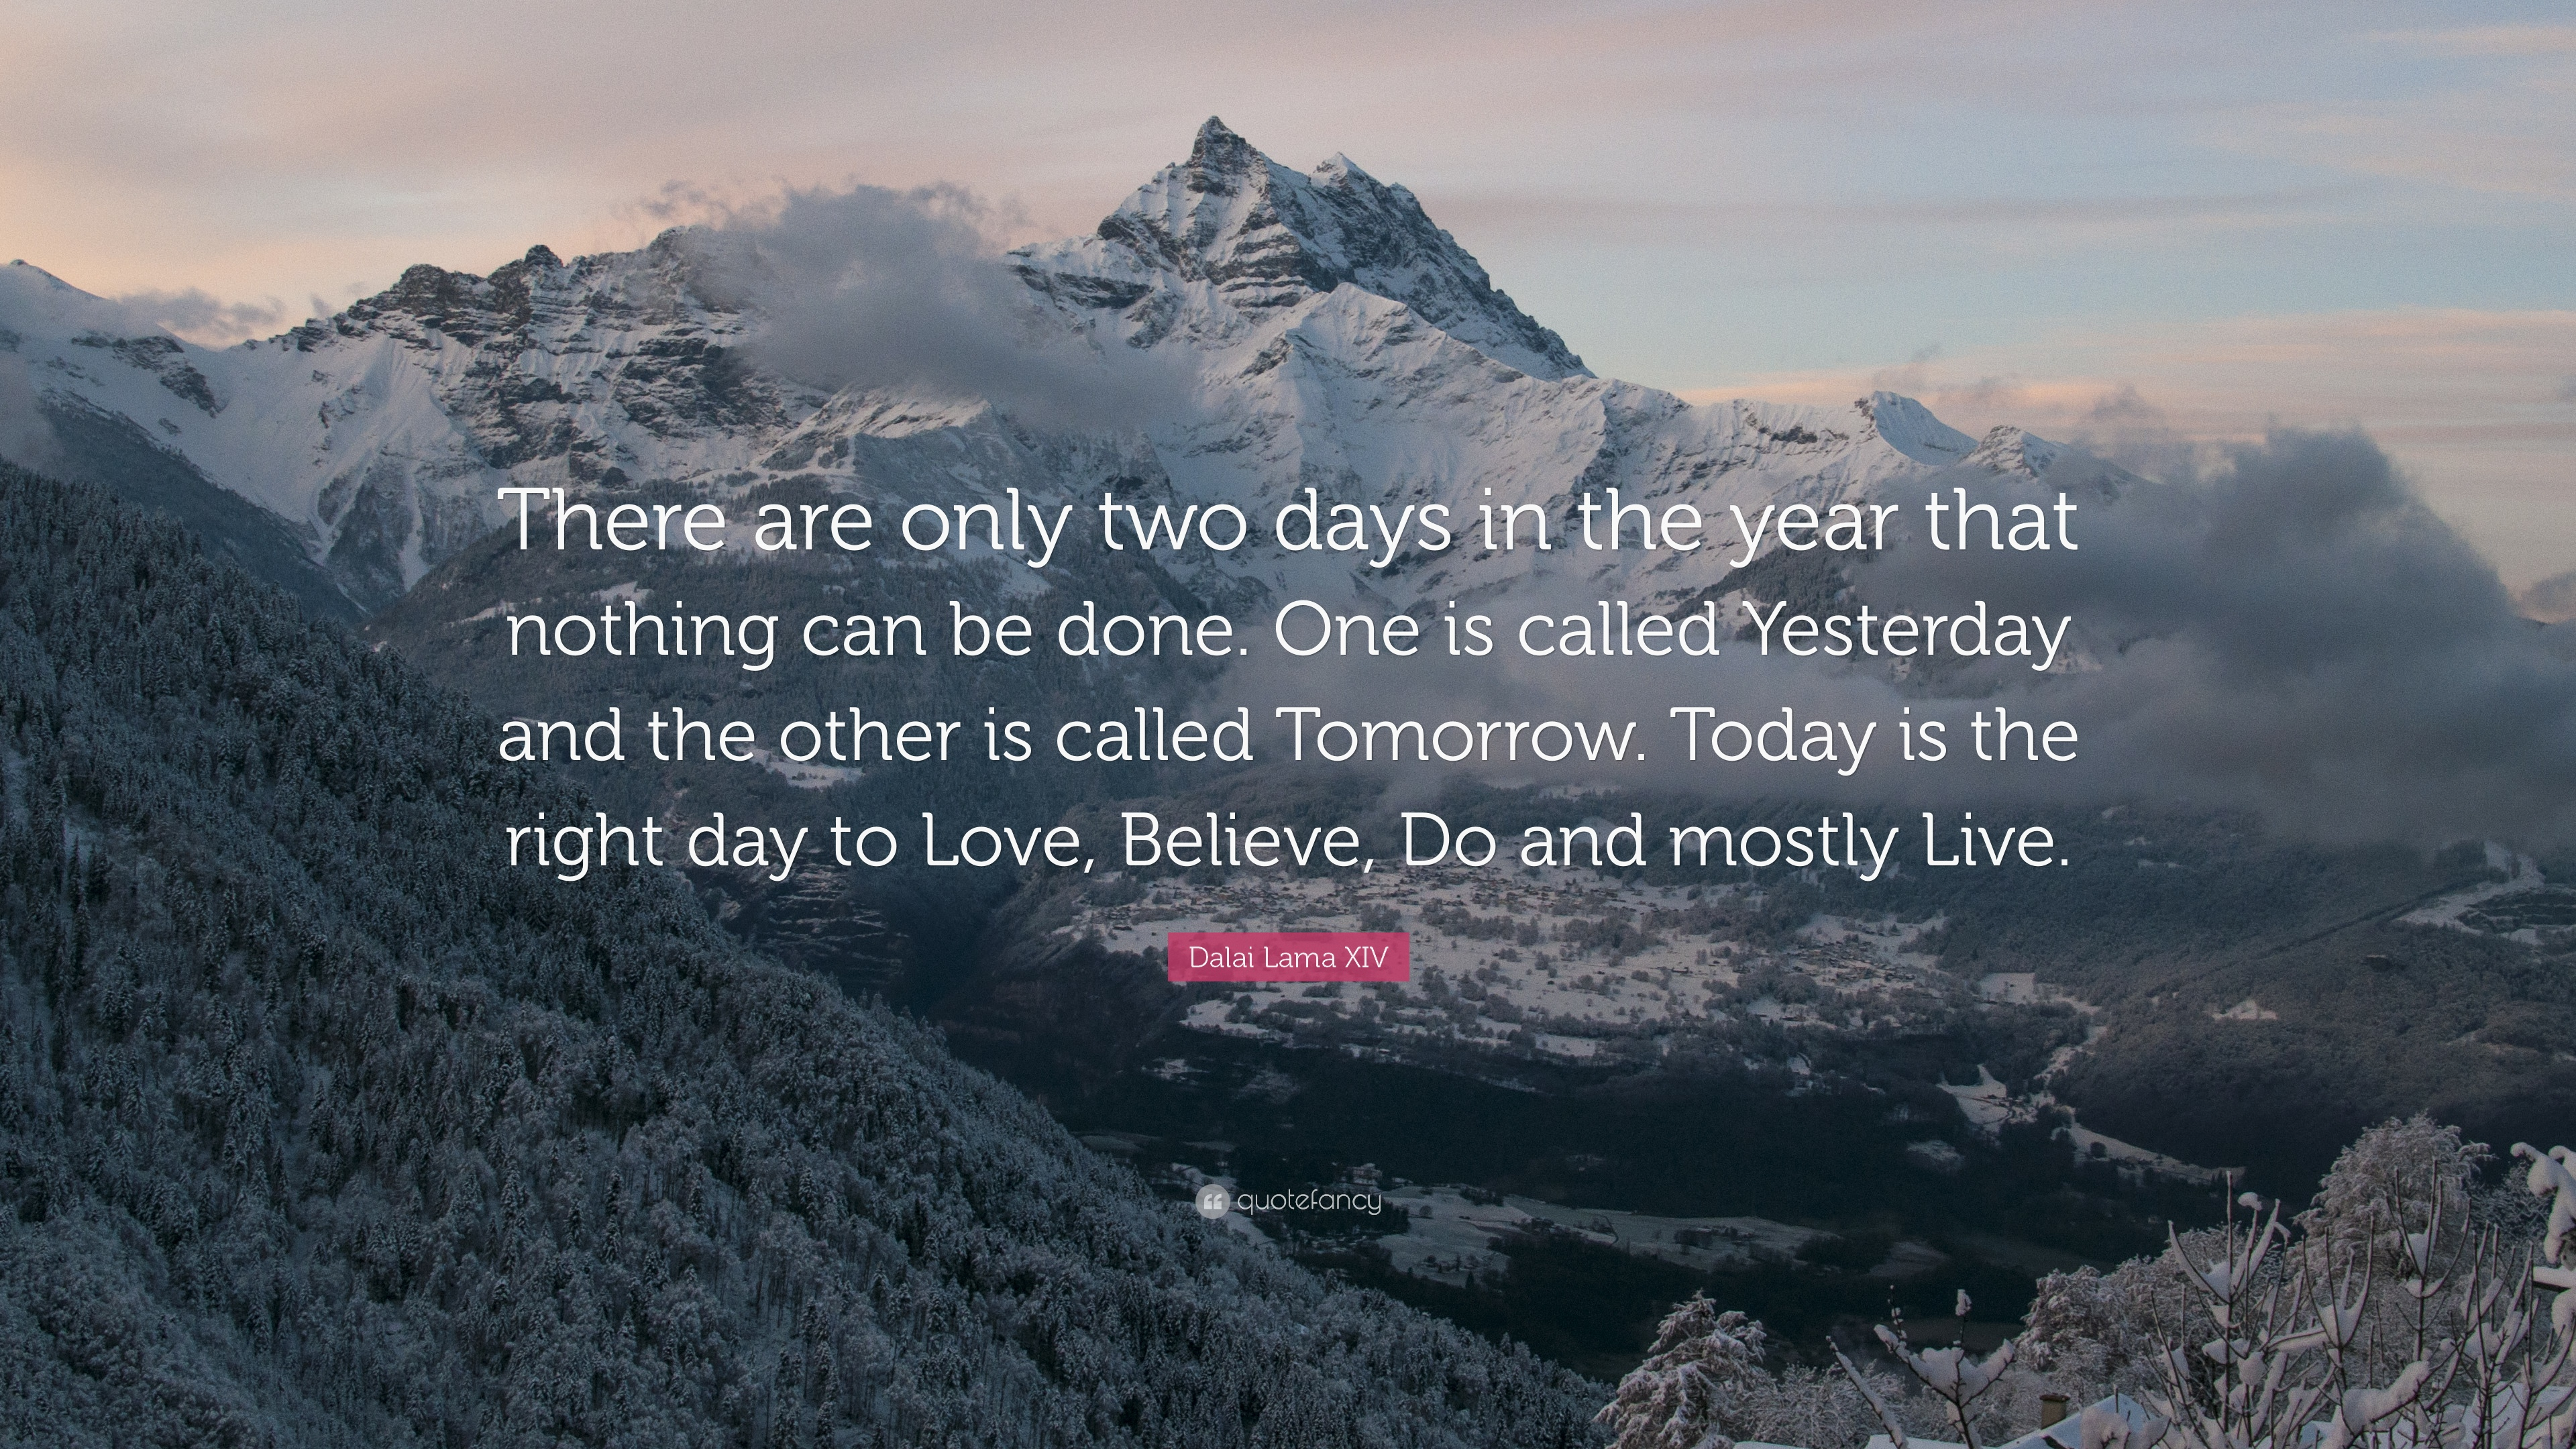 dalai lama xiv quote there are only two days in the year that nothing